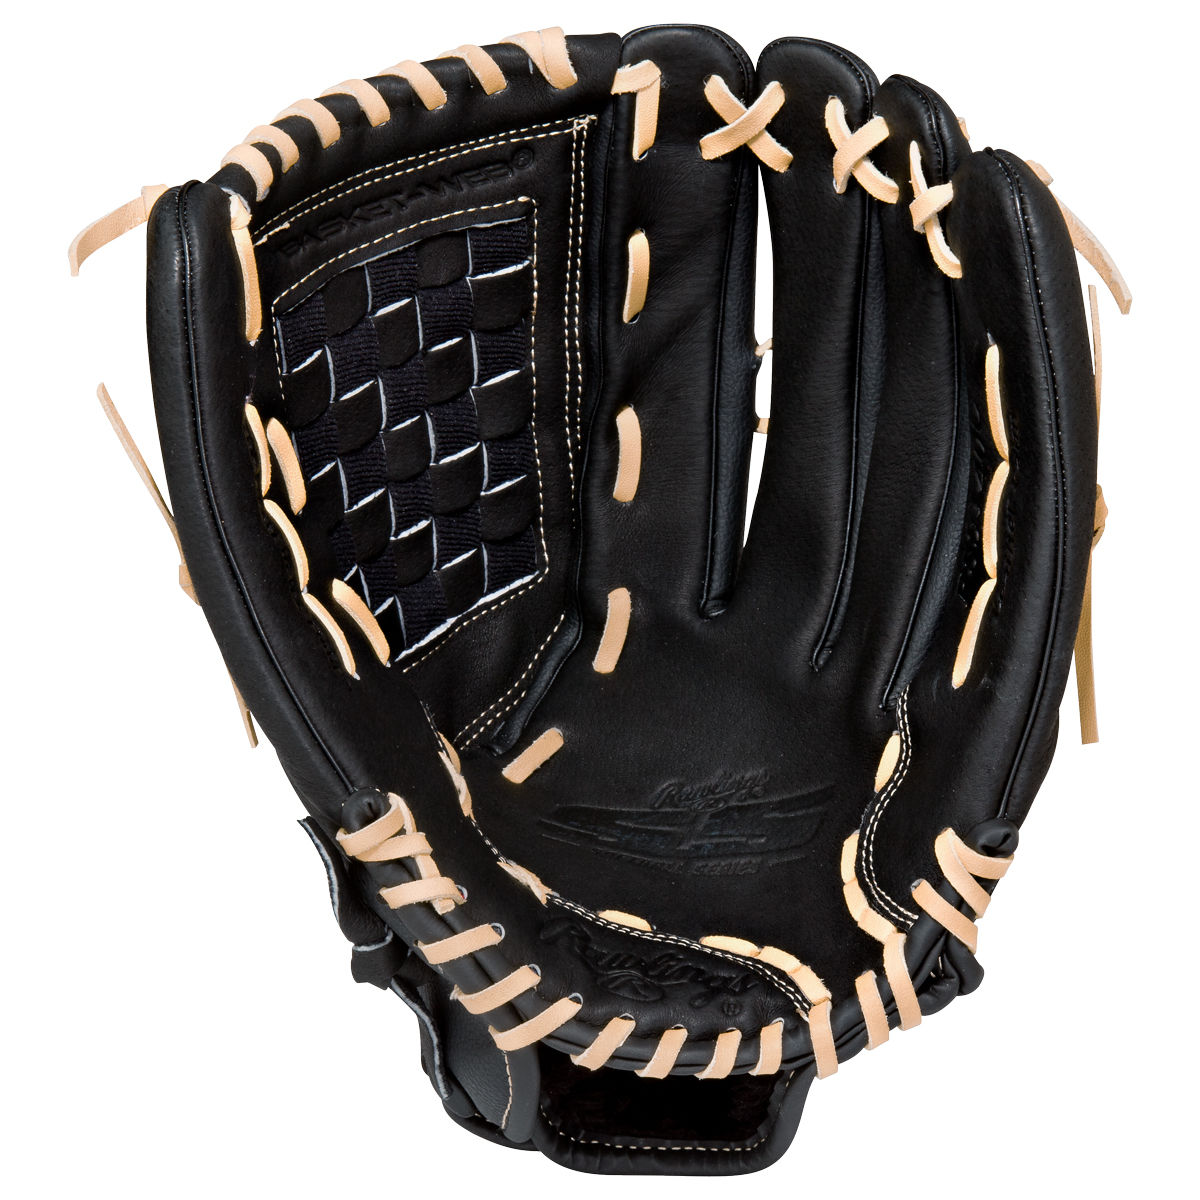 Rawlings Playmaker 14 Inch Basket Web Left Hand Throw Glove